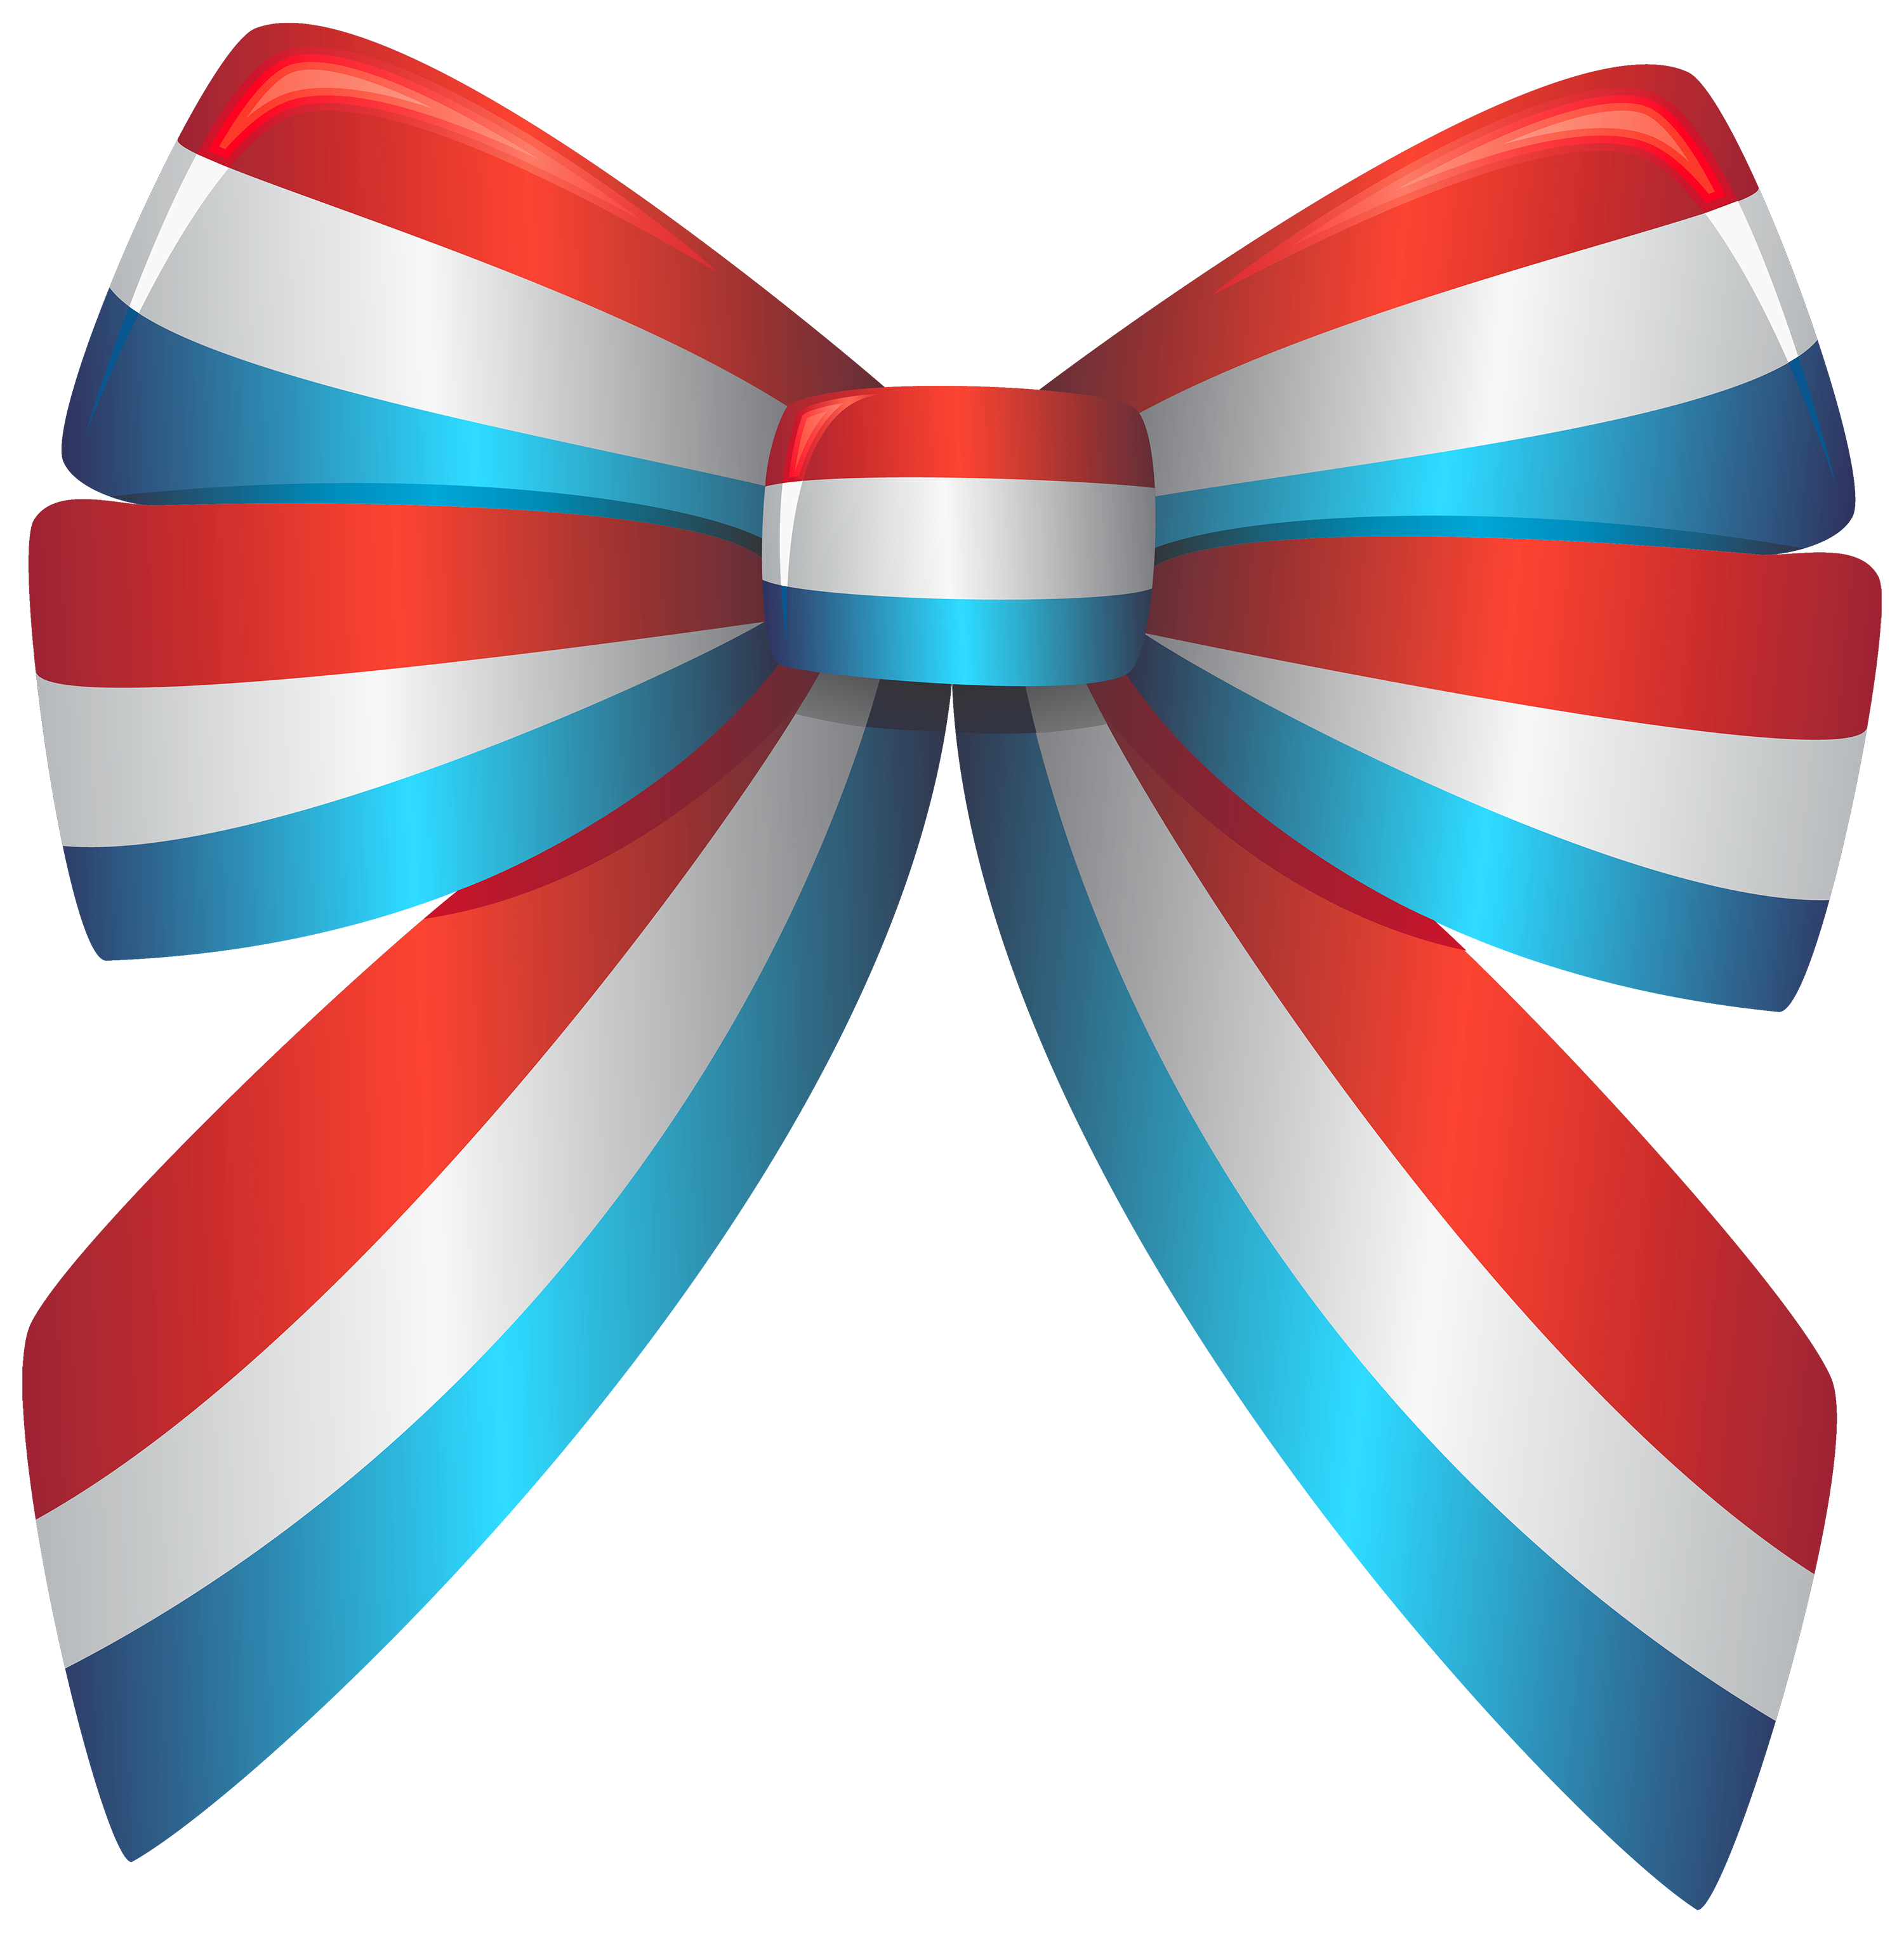 3000x3046 Red White And Blue Ribbon Png Clipart